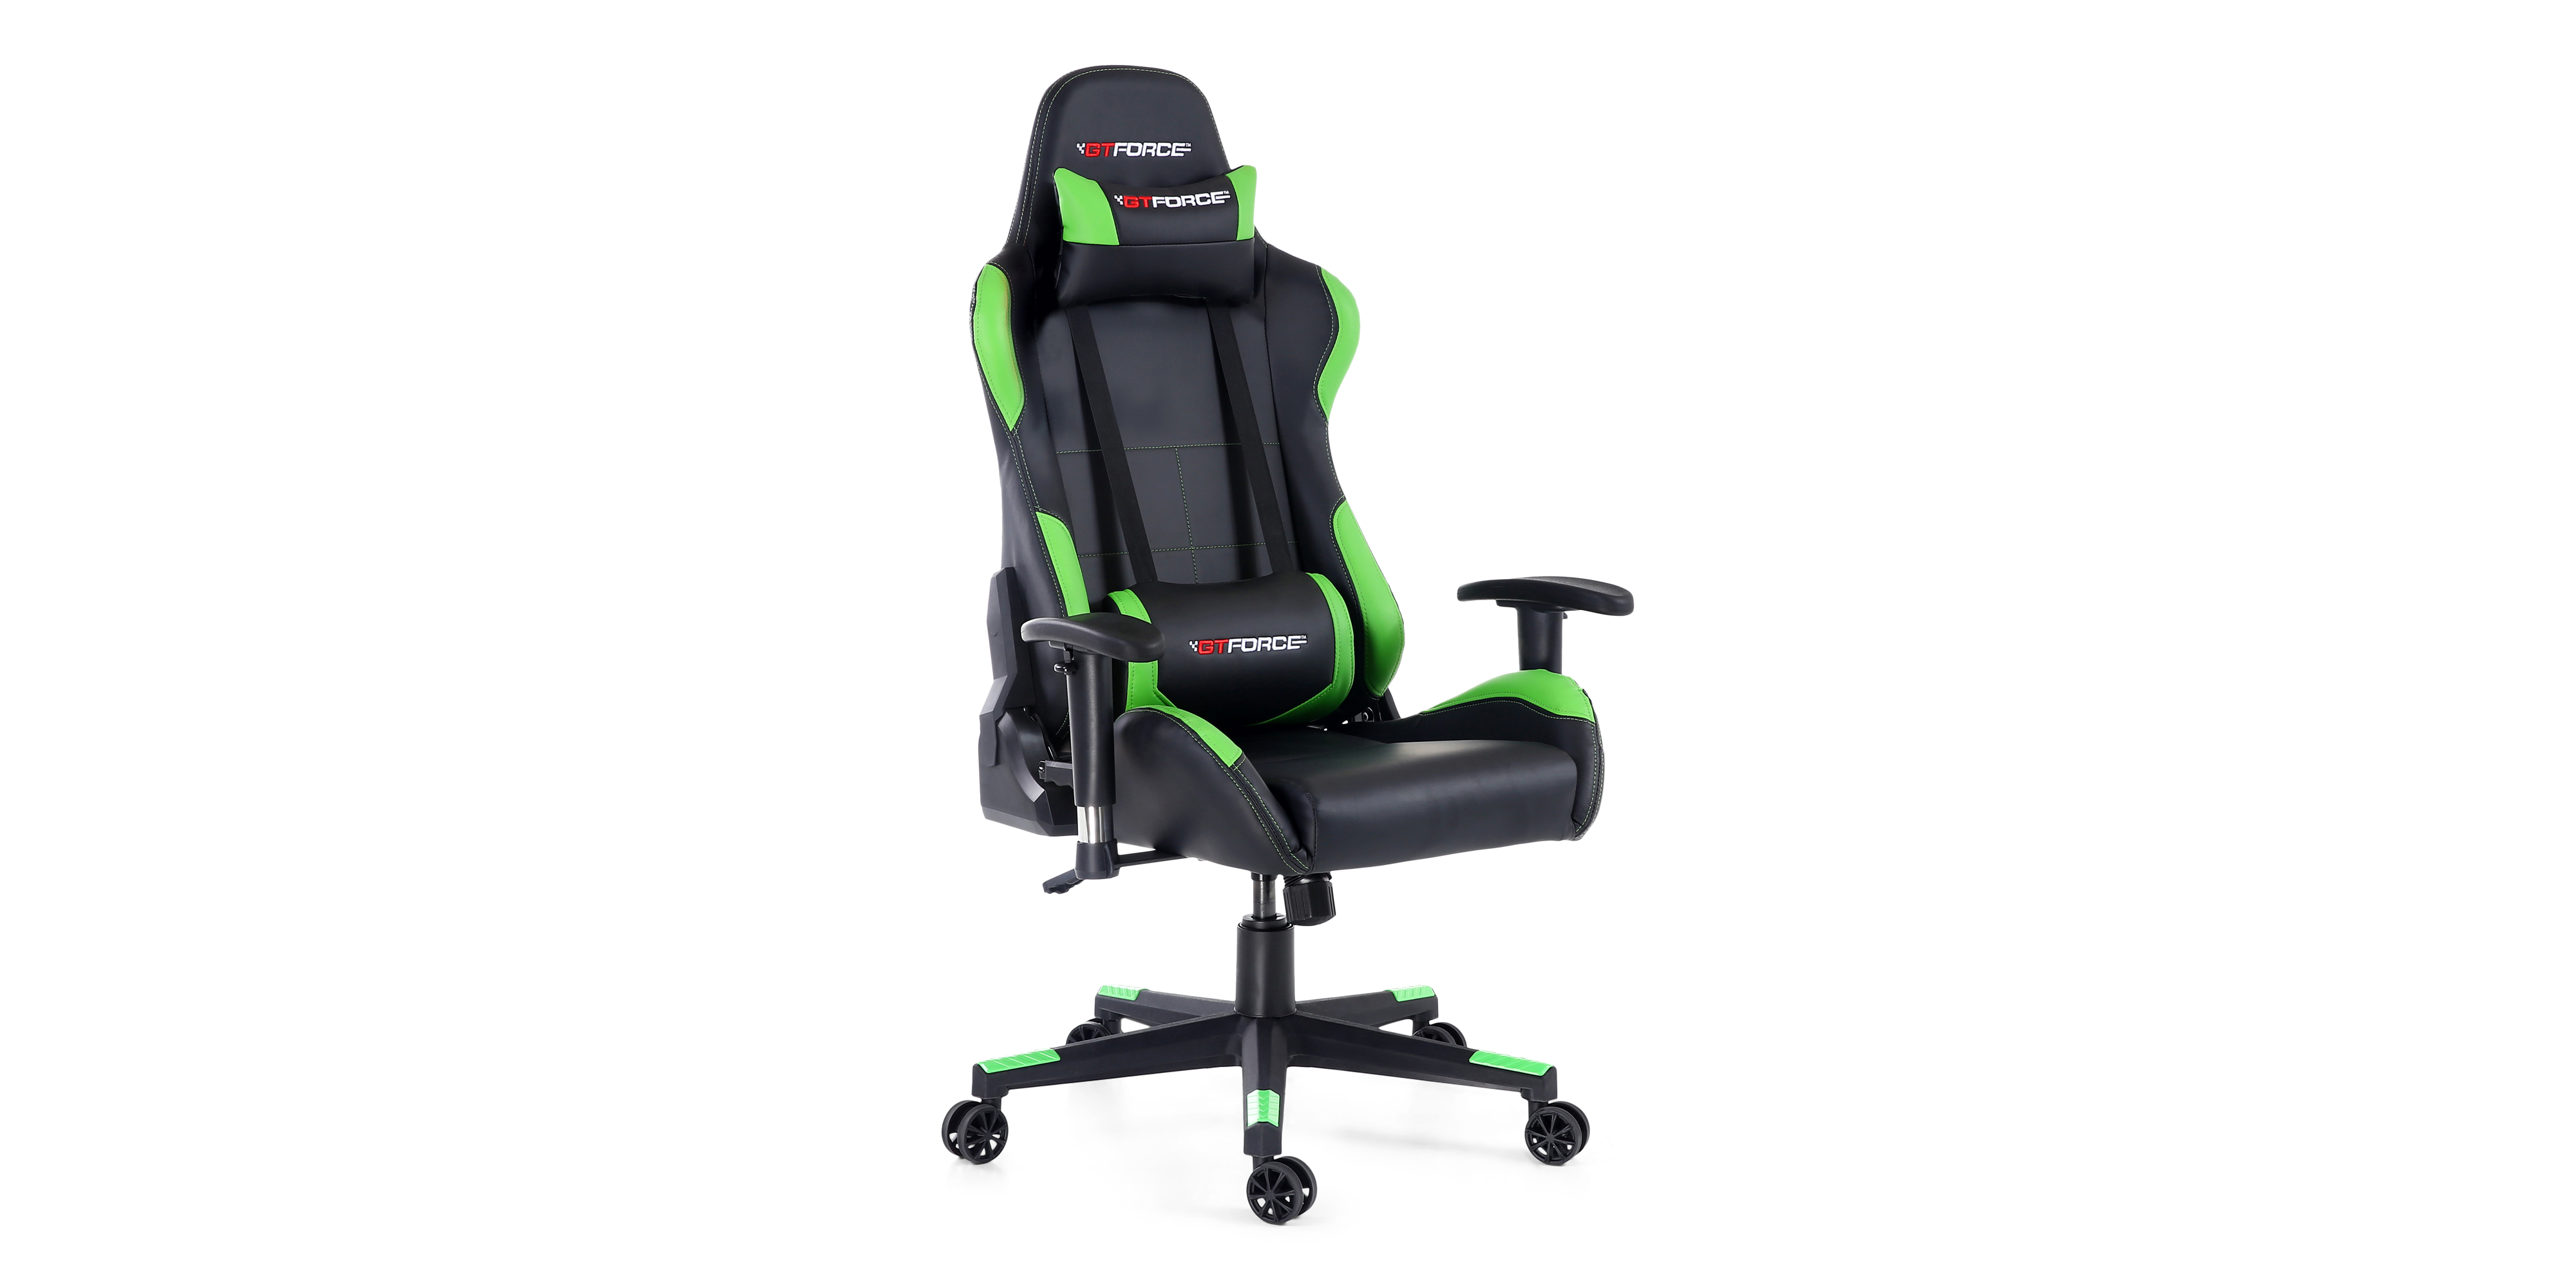 Gtforce Pro Bx Gaming Chair With Recline In Black Green